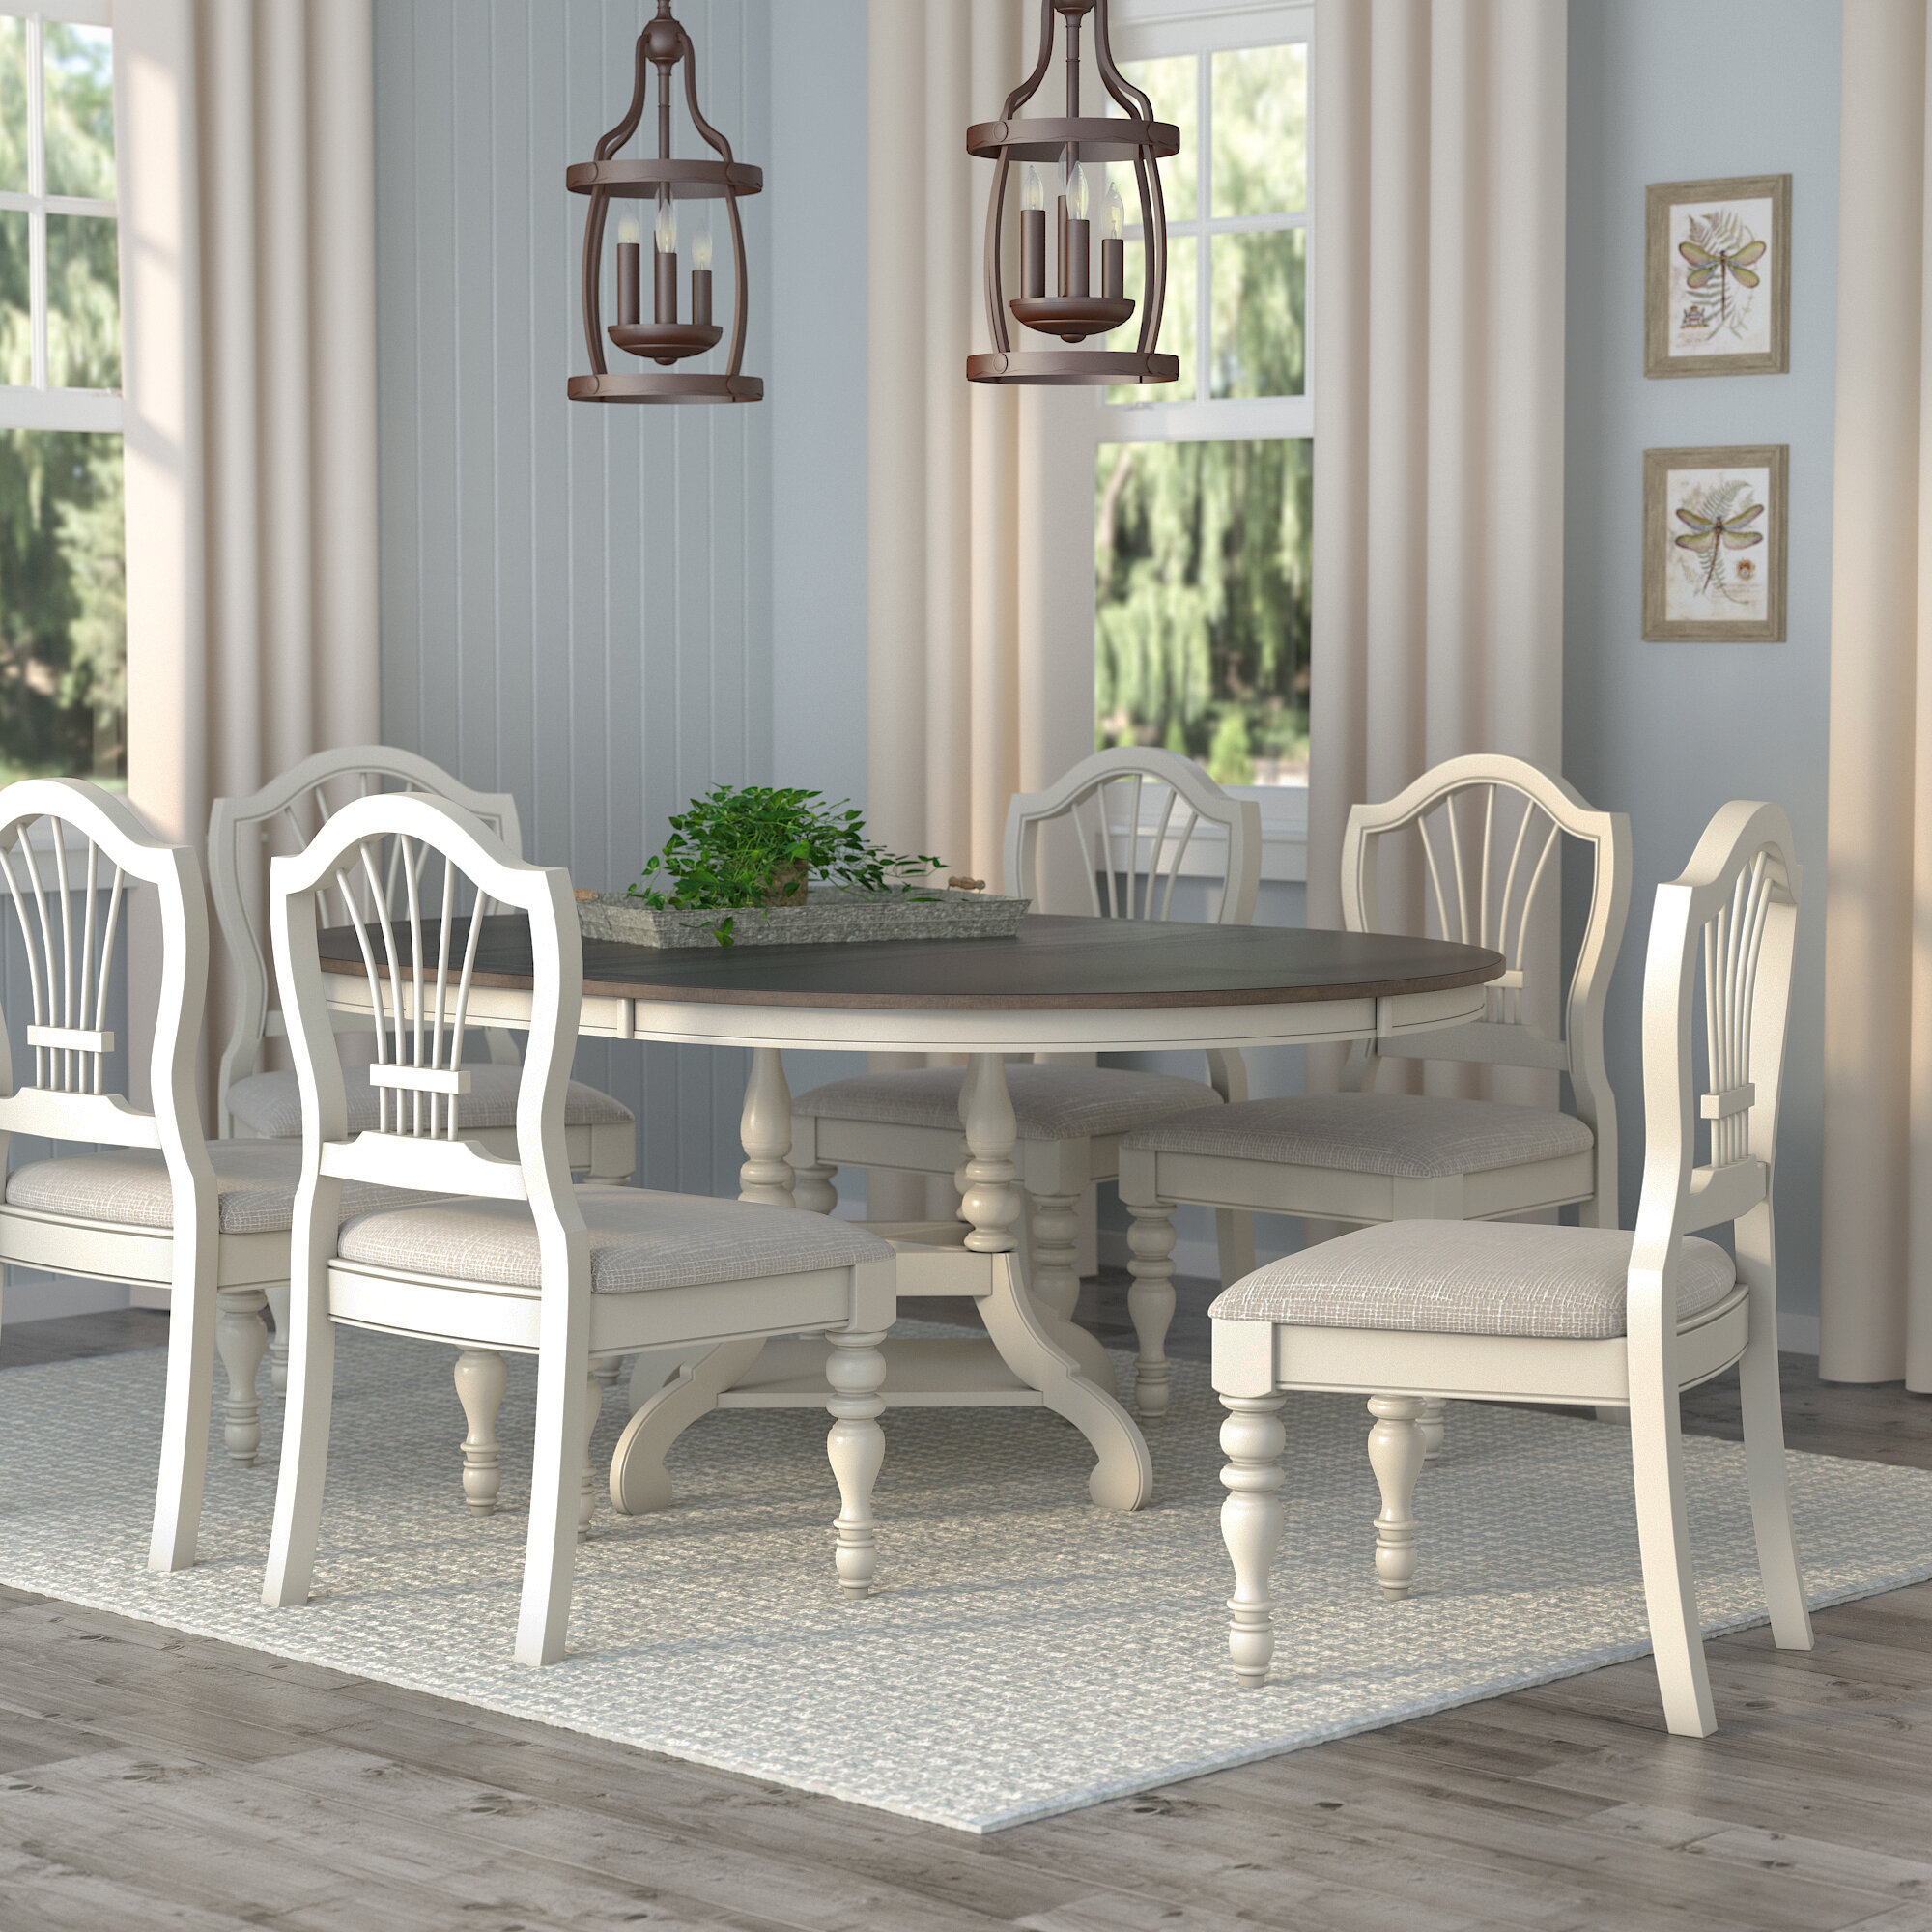 Lark Manor Alise 7 Piece Dining Set U0026 Reviews | Wayfair